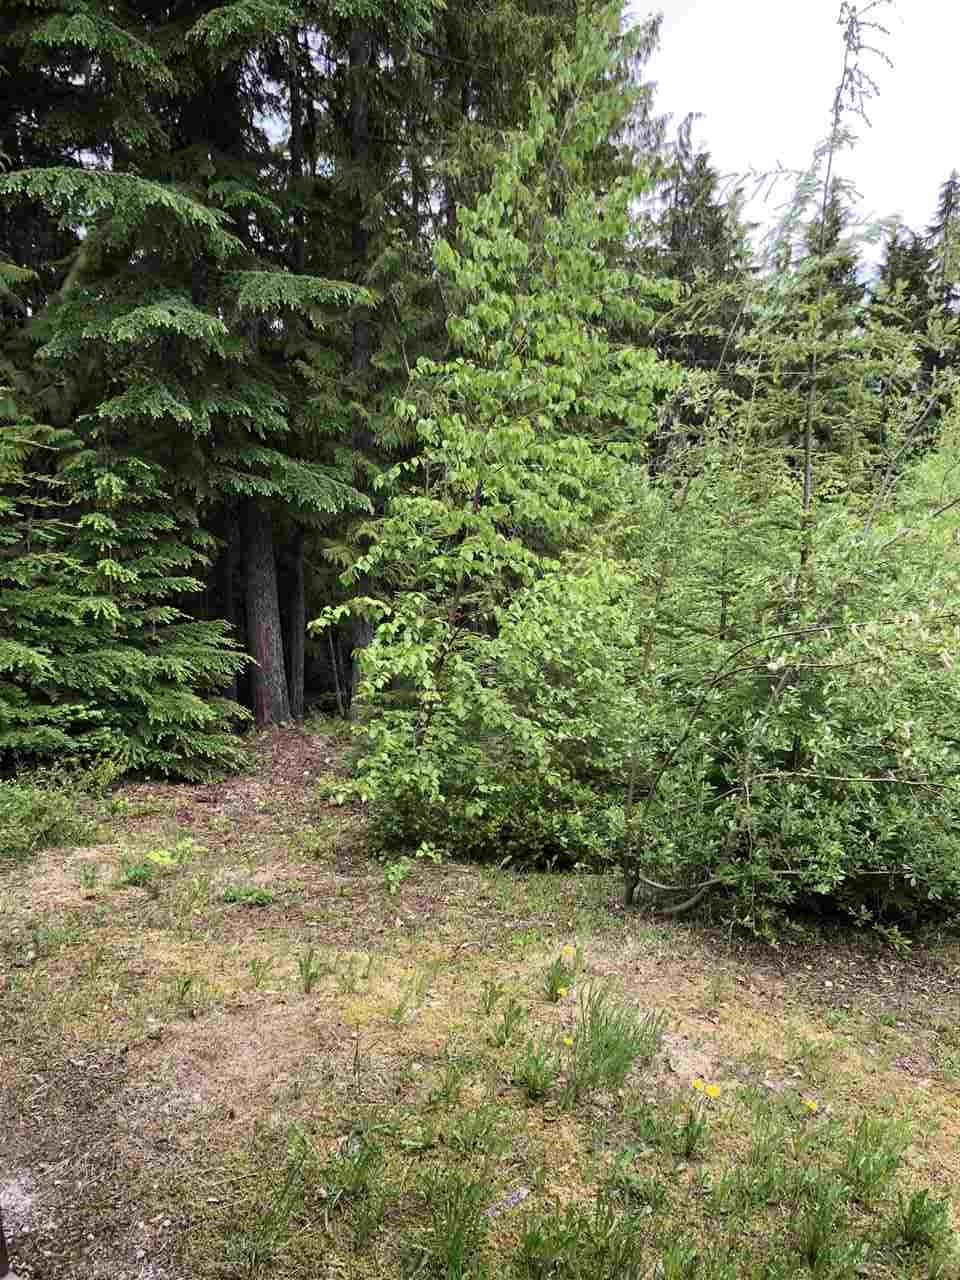 Photo 15: Photos: 5660 MARSHALL CREEK Road: Horsefly House for sale (Williams Lake (Zone 27))  : MLS®# R2277044